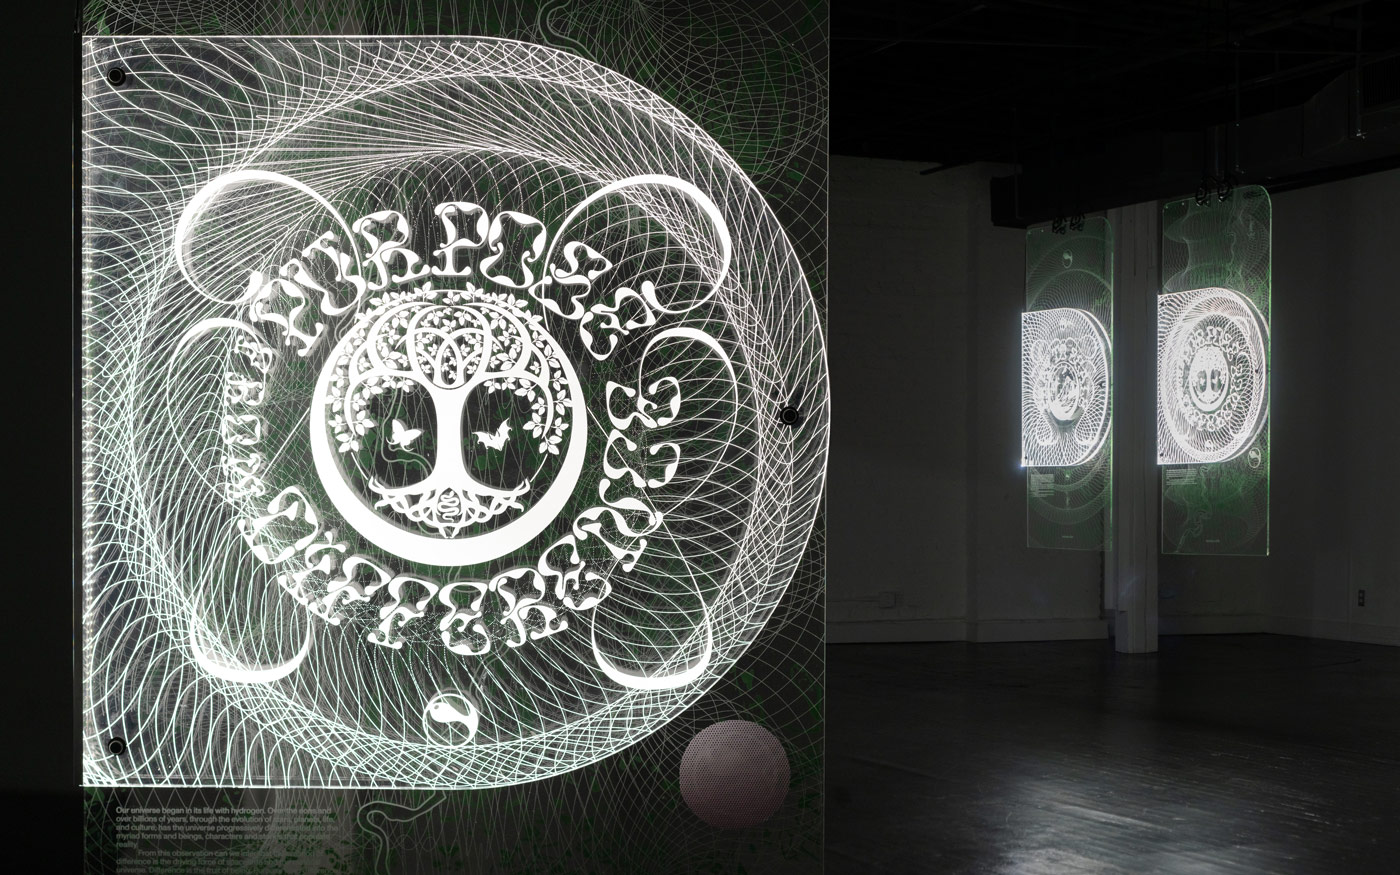 """09 collide24 Panama Papers Office Timur Si Qin - Panama Papers Office on their collaboration with artist Timur Si-Qin for his Solo-Show """"Take Me, I Love You"""" and the meaning of spirituality for the 21st century"""